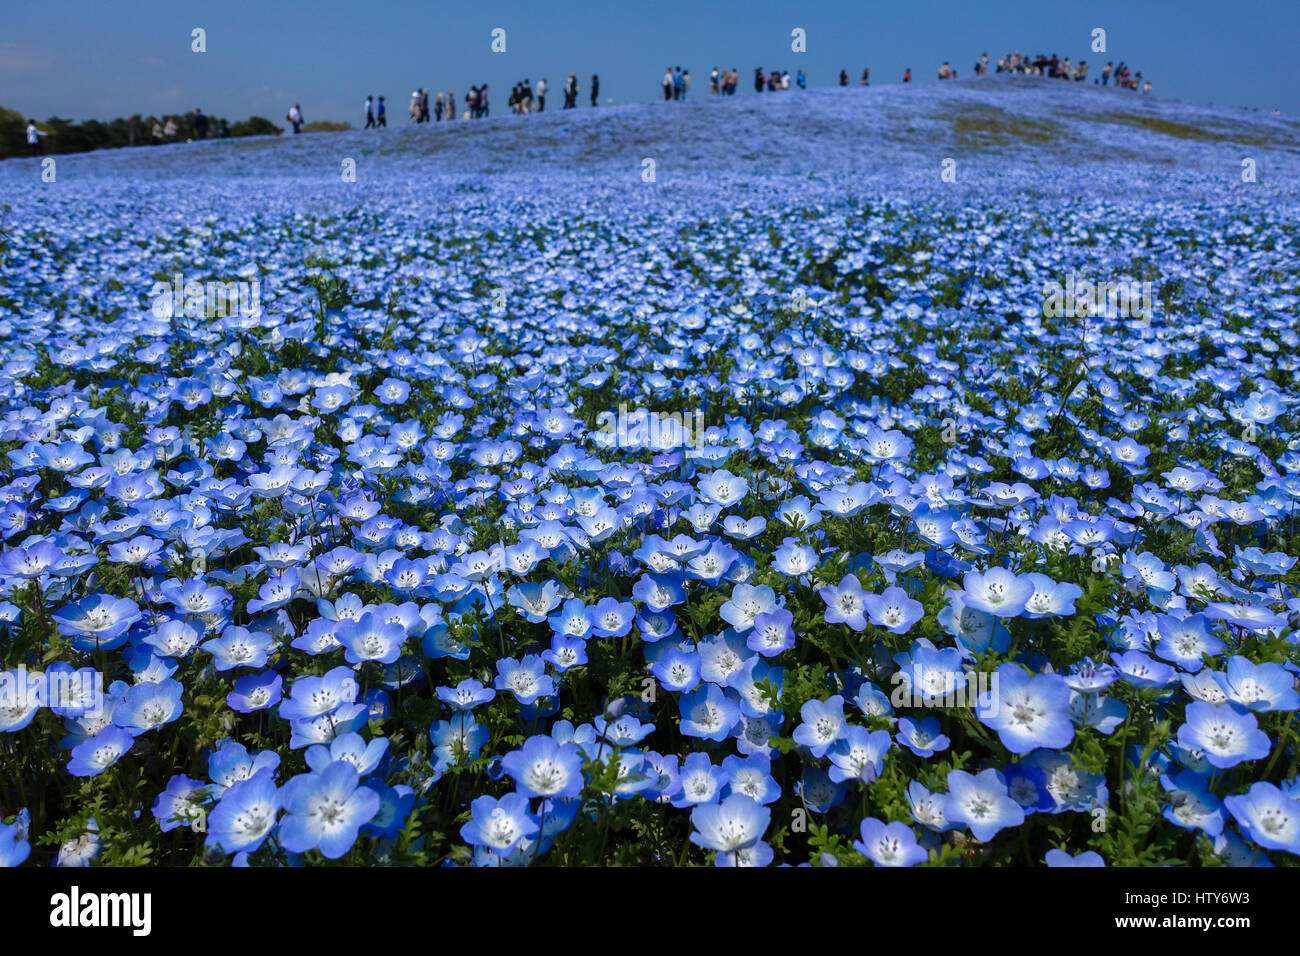 Baby Blue Eyes Flower Field Stock Photos & Baby Blue Eyes Flower ...